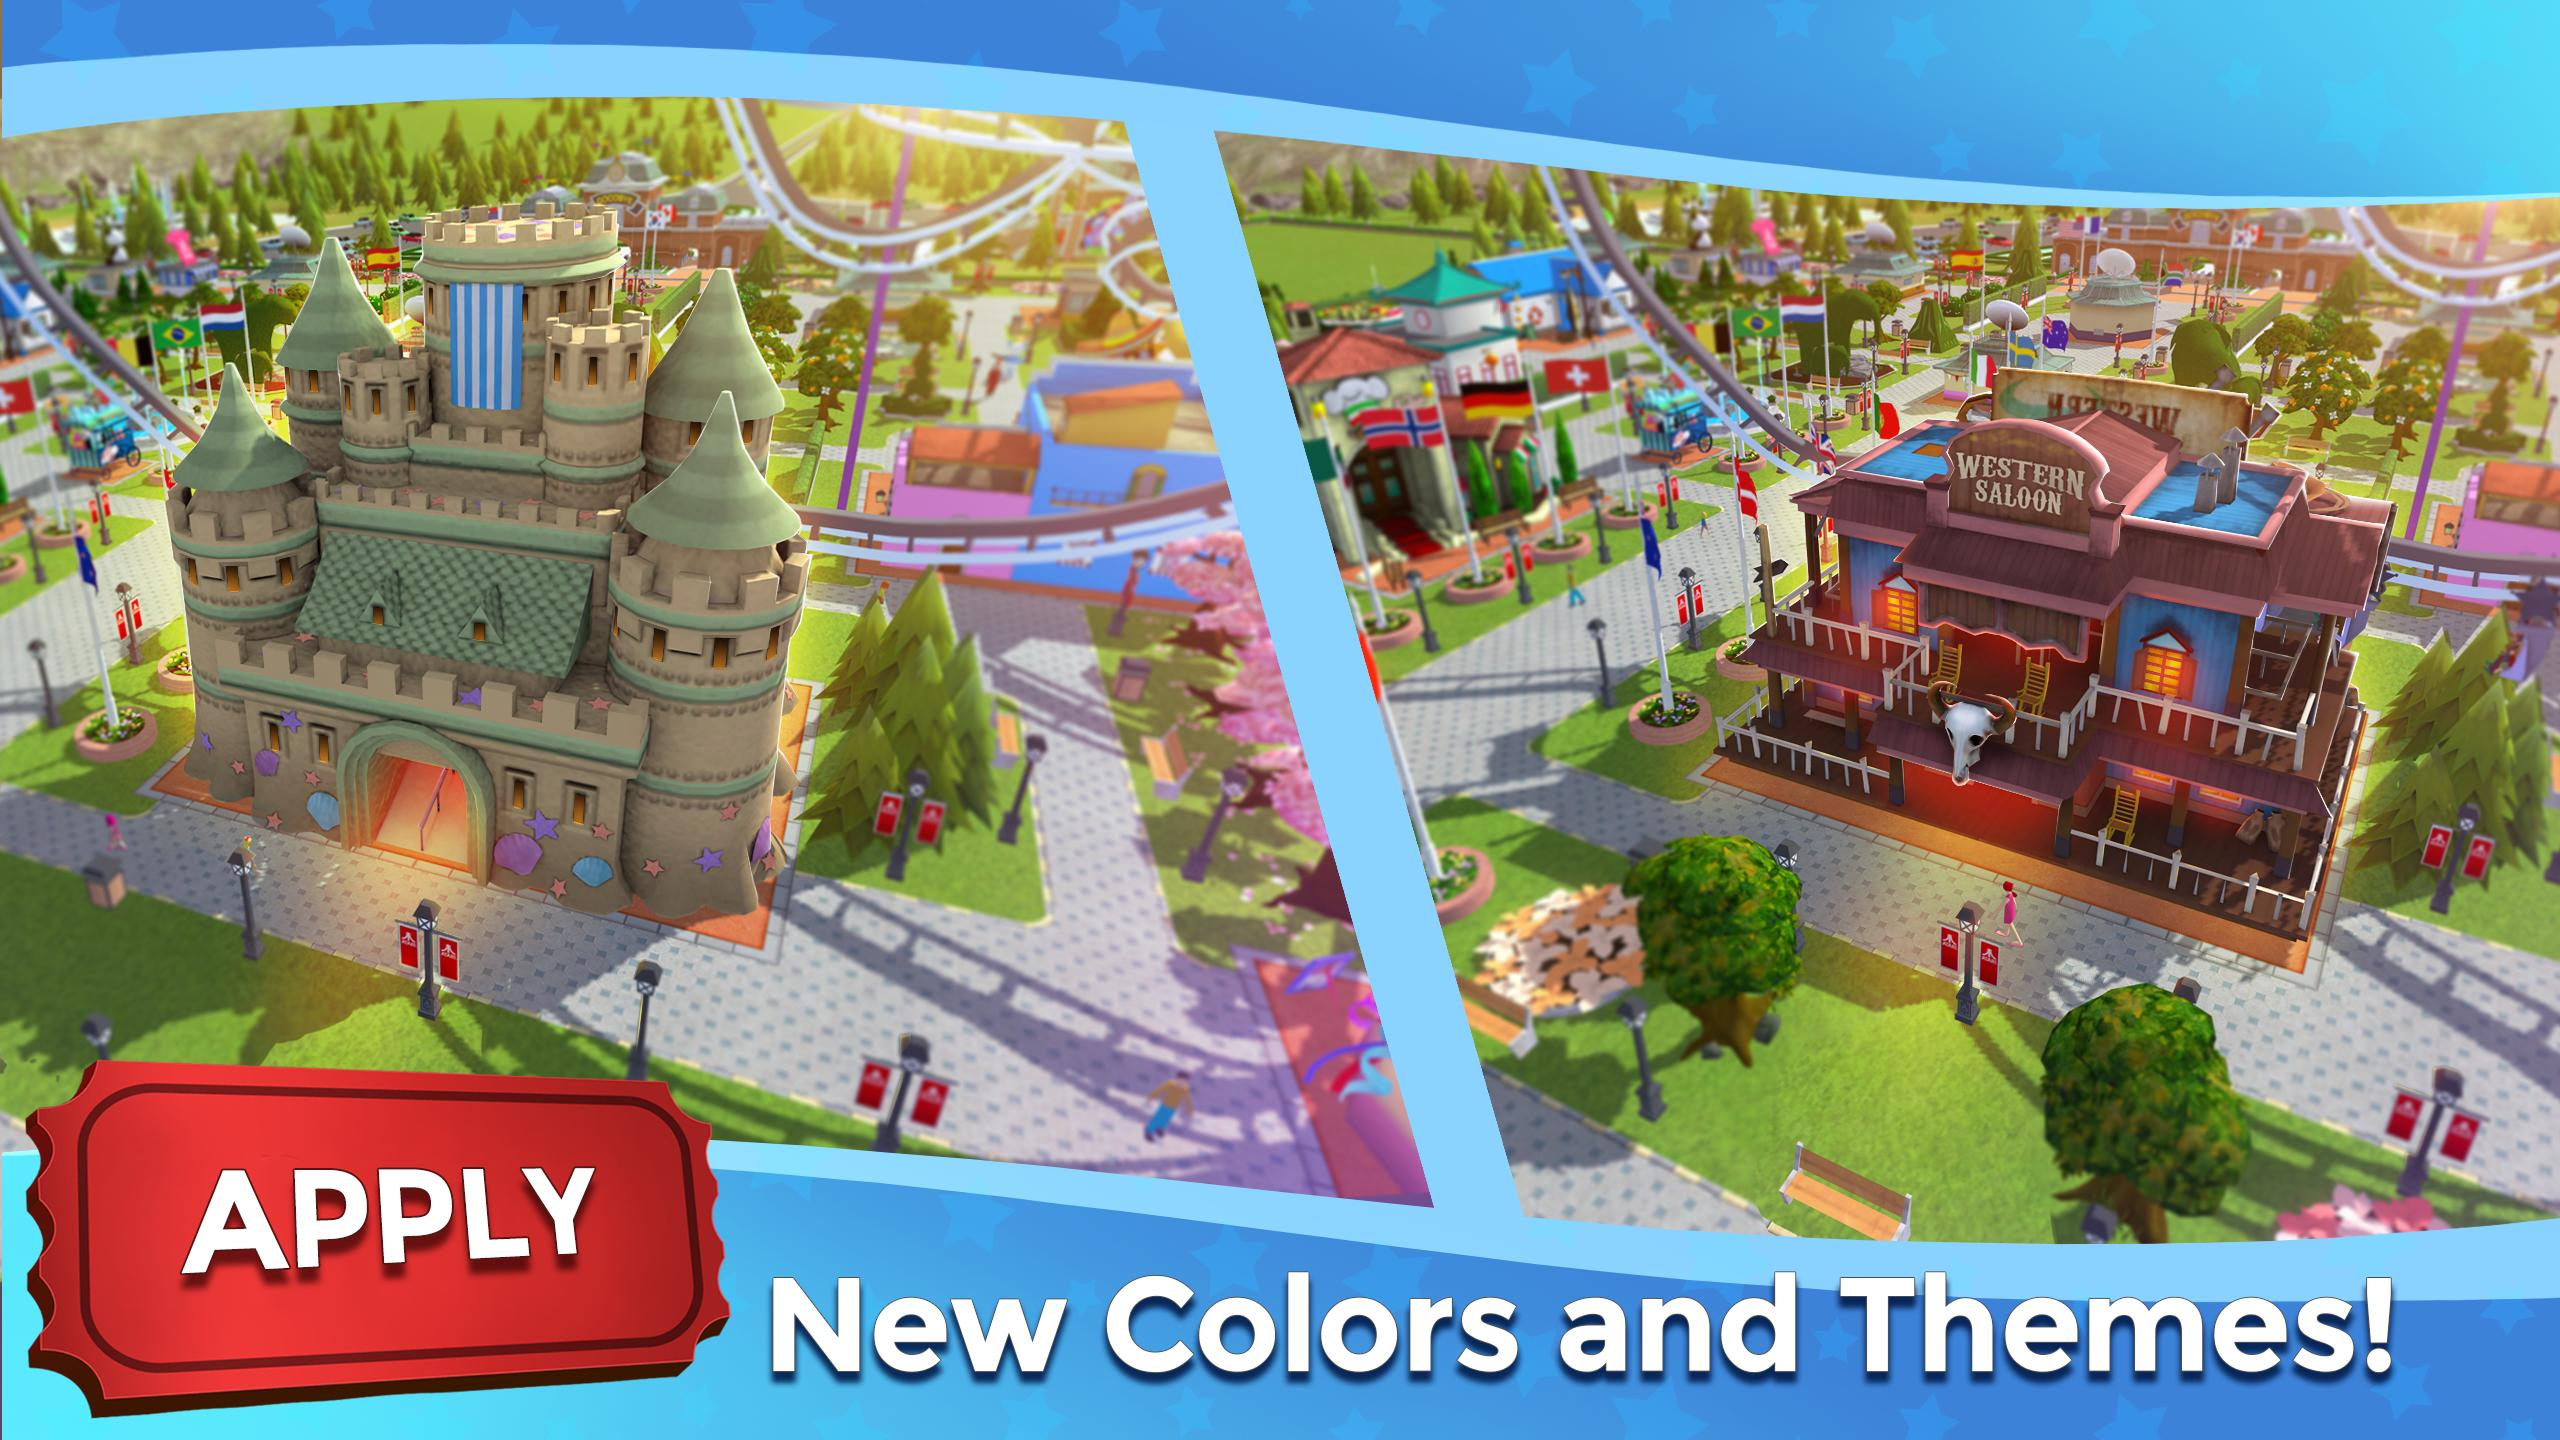 RollerCoaster Tycoon Touch - Build your Theme Park 3.5.0 Screenshot 21